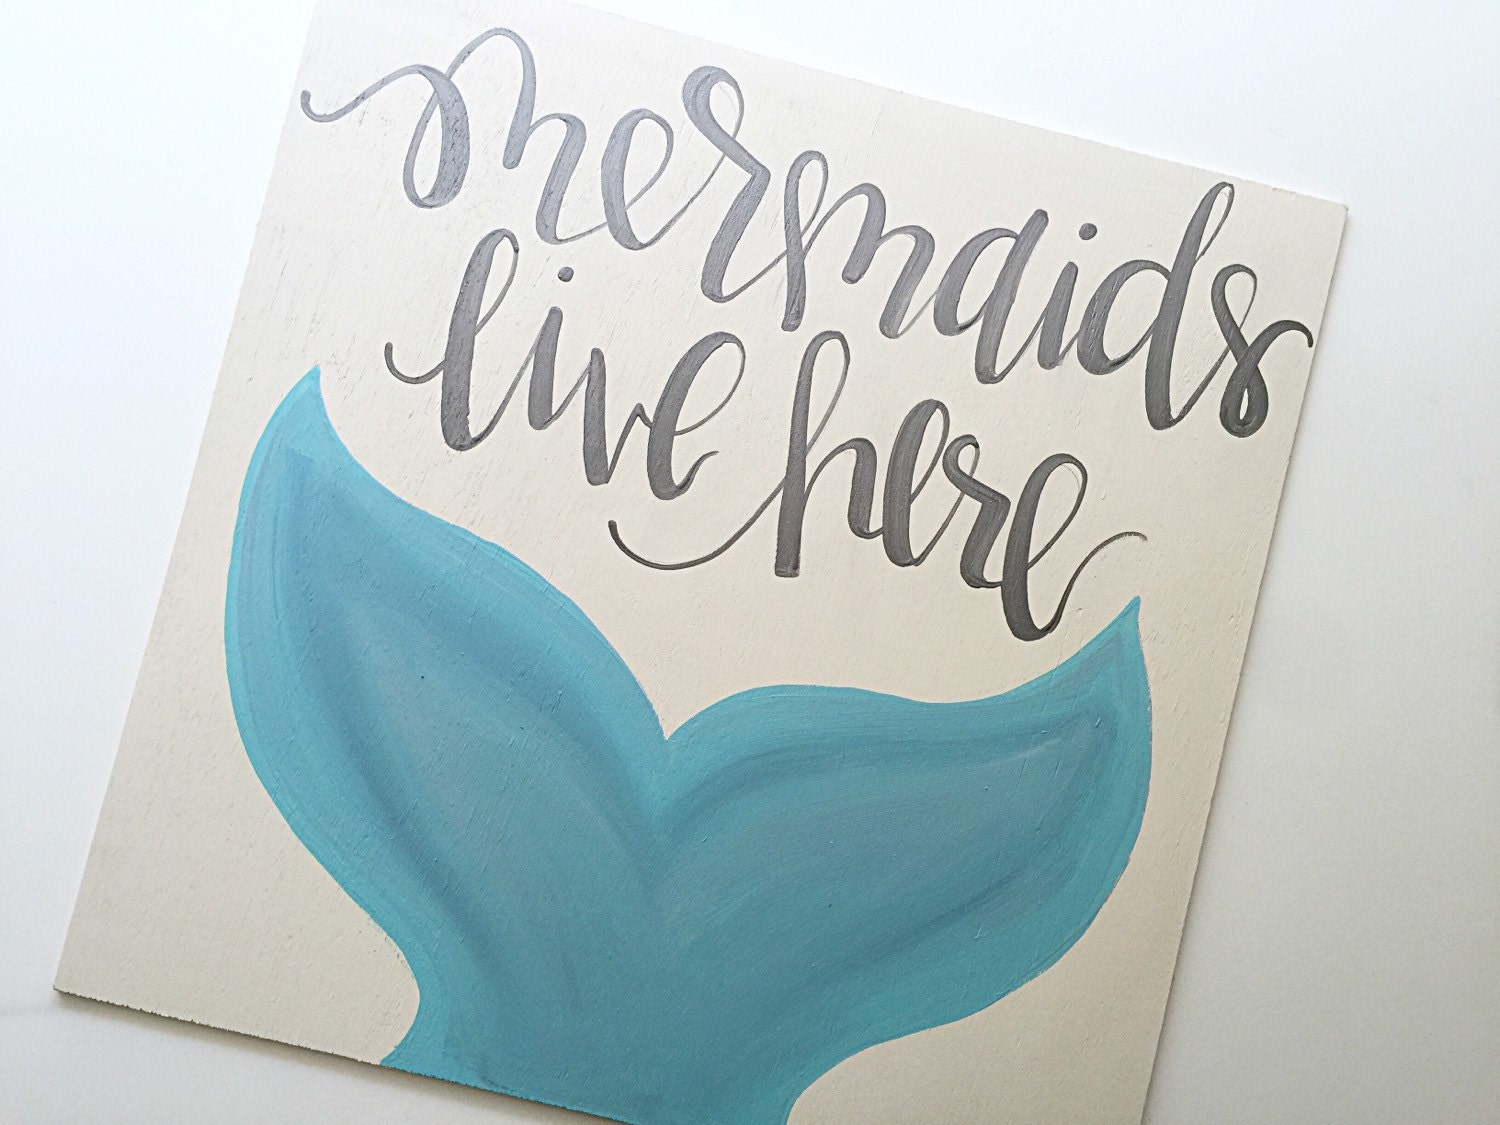 Mermaids live here mermaid sign home decor decor for Mermaid decorations for home